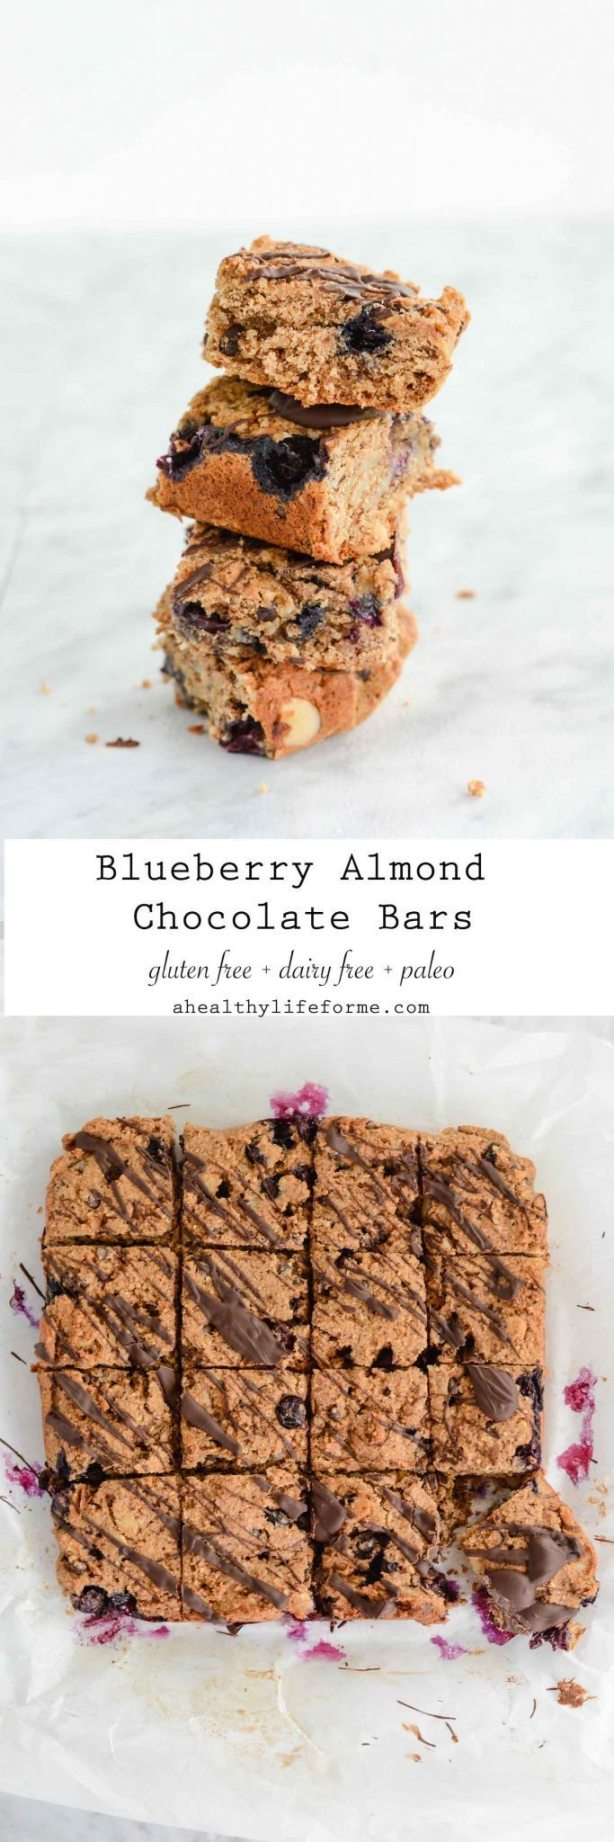 Blueberry Almond Chocolate Bars Gluten Free Dairy Free and Paleo Recipe | ahealthylifeforme.com